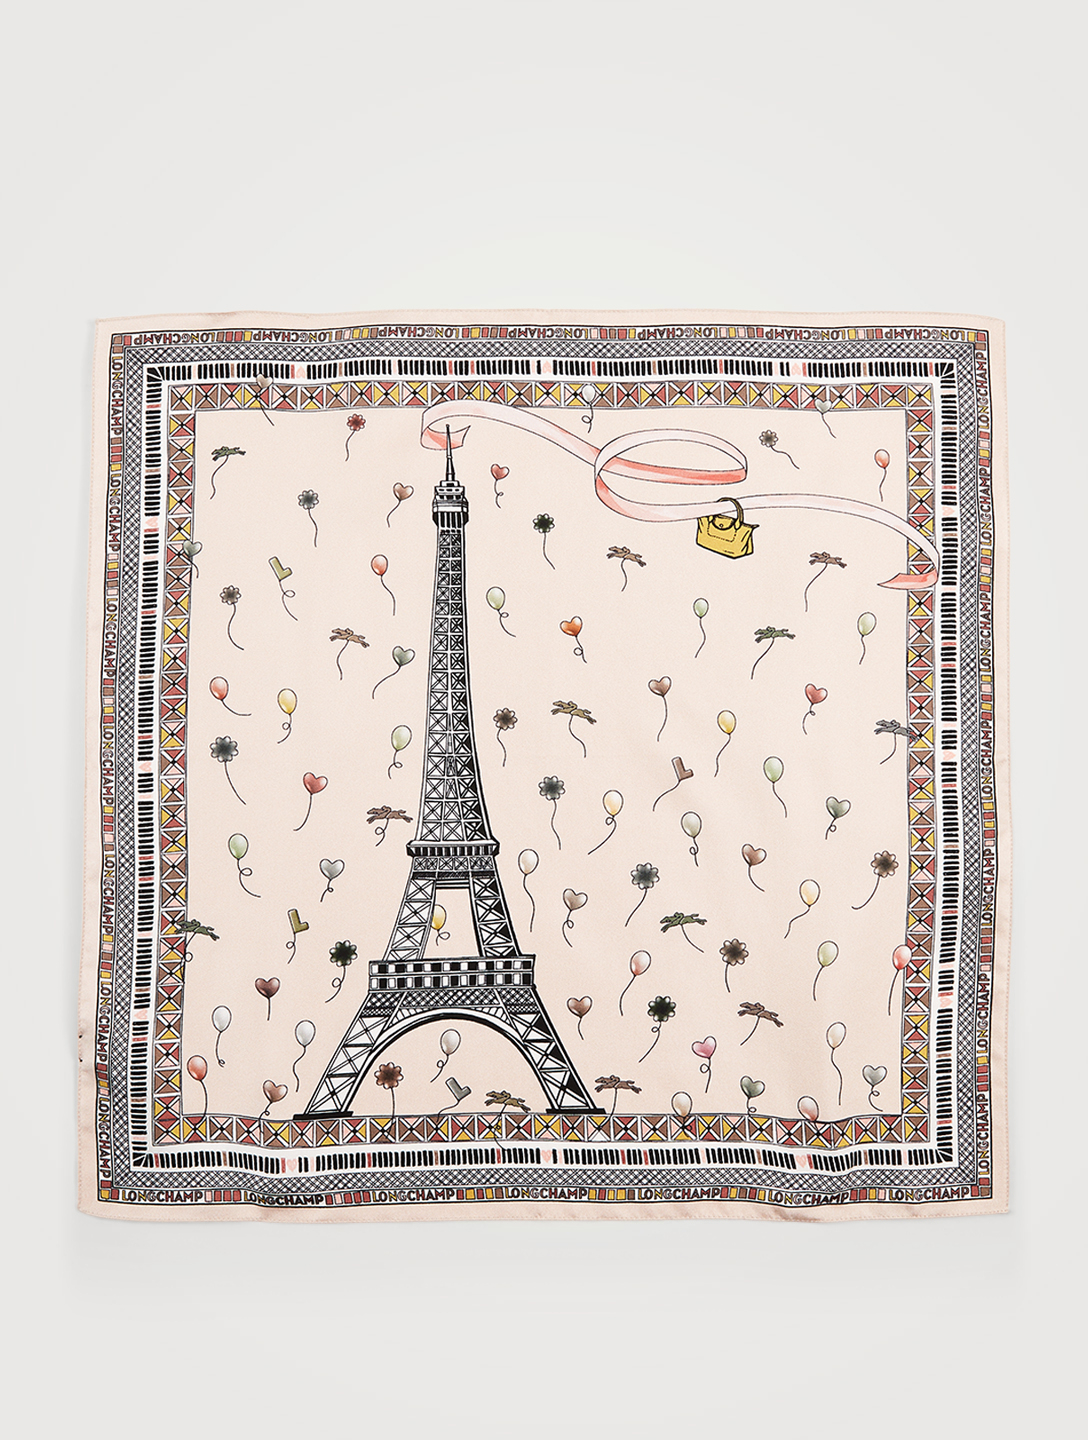 LONGCHAMP Silk Scarf In Eiffel Tower Print Women's Pink